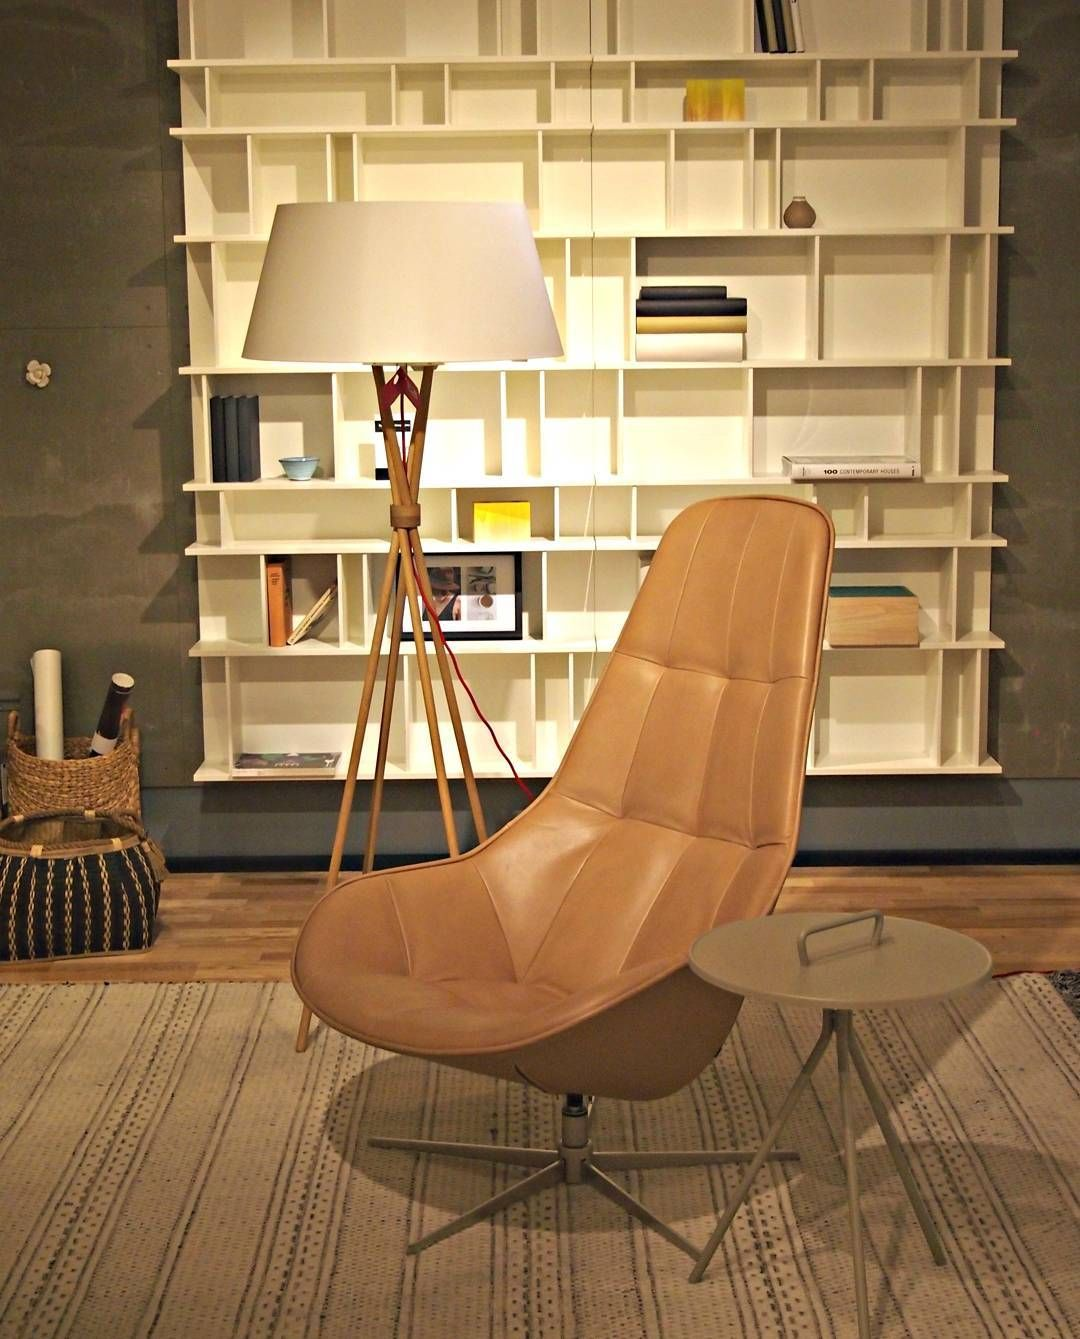 Skorzany Fotel Boston Lether Armchair Boston Chaotyczne Regaly Como Chaotic Bookcase Boconcept Trojmiasto Boconcept Gdynia Boston Armchair B Vardagsrum